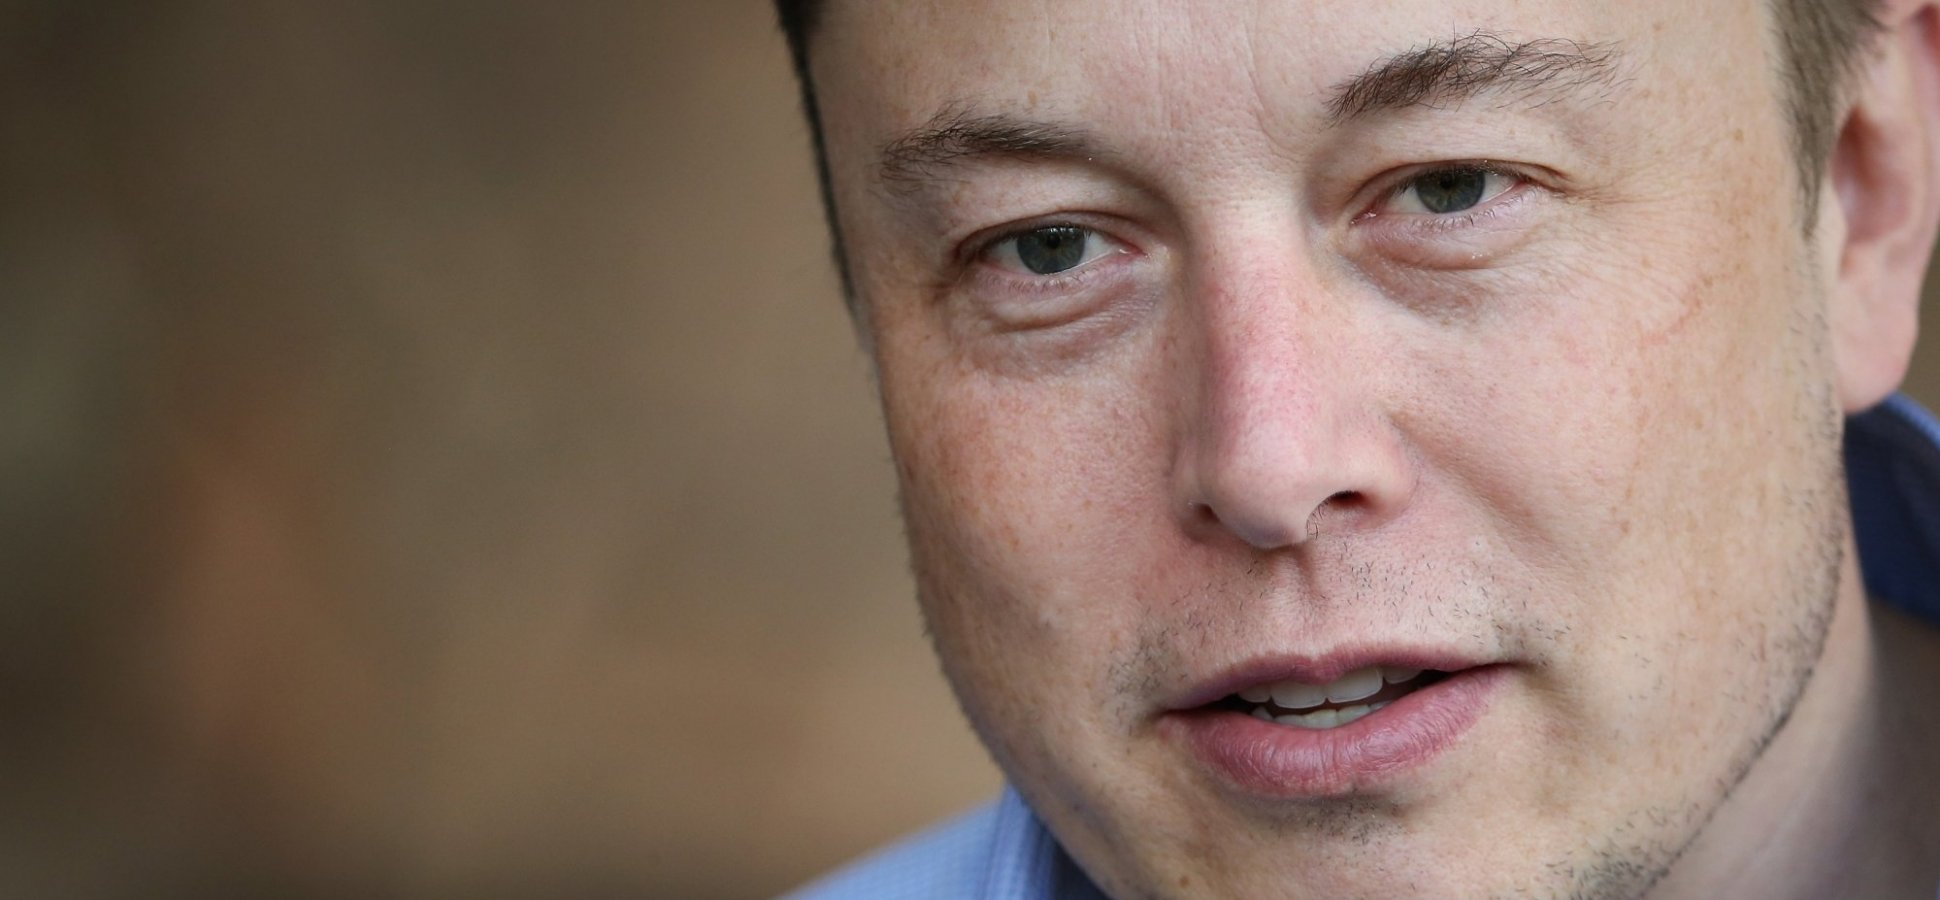 This Elon Musk Email to Tesla Employees Is a Powerful Lesson in Authentic, Heartfelt Leadership